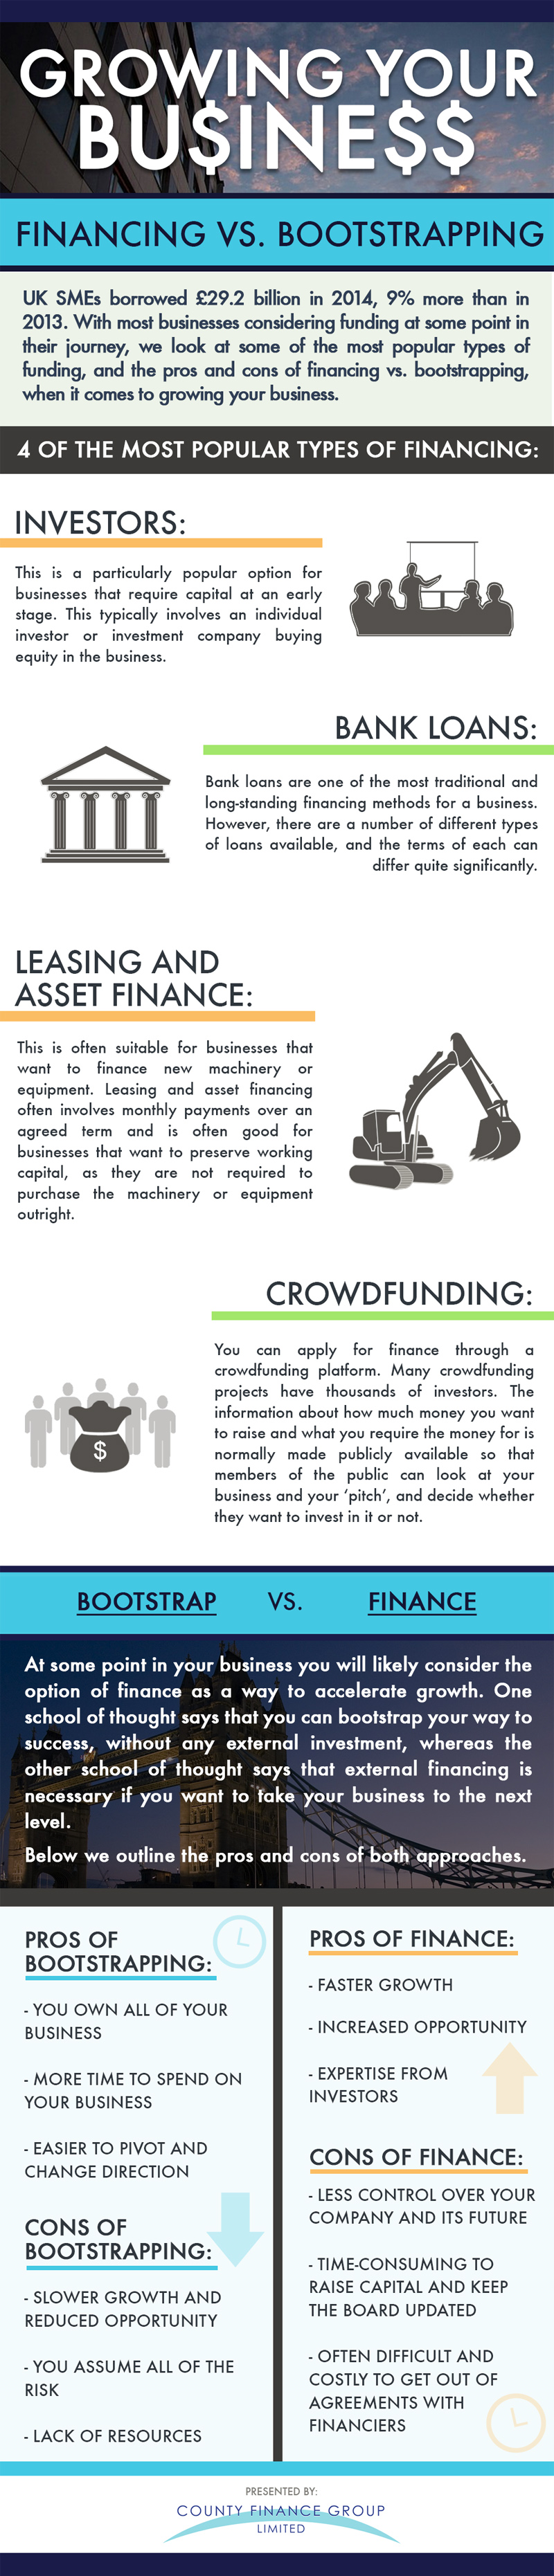 Growing Your Business - Financing vs Bootstrapping infographic